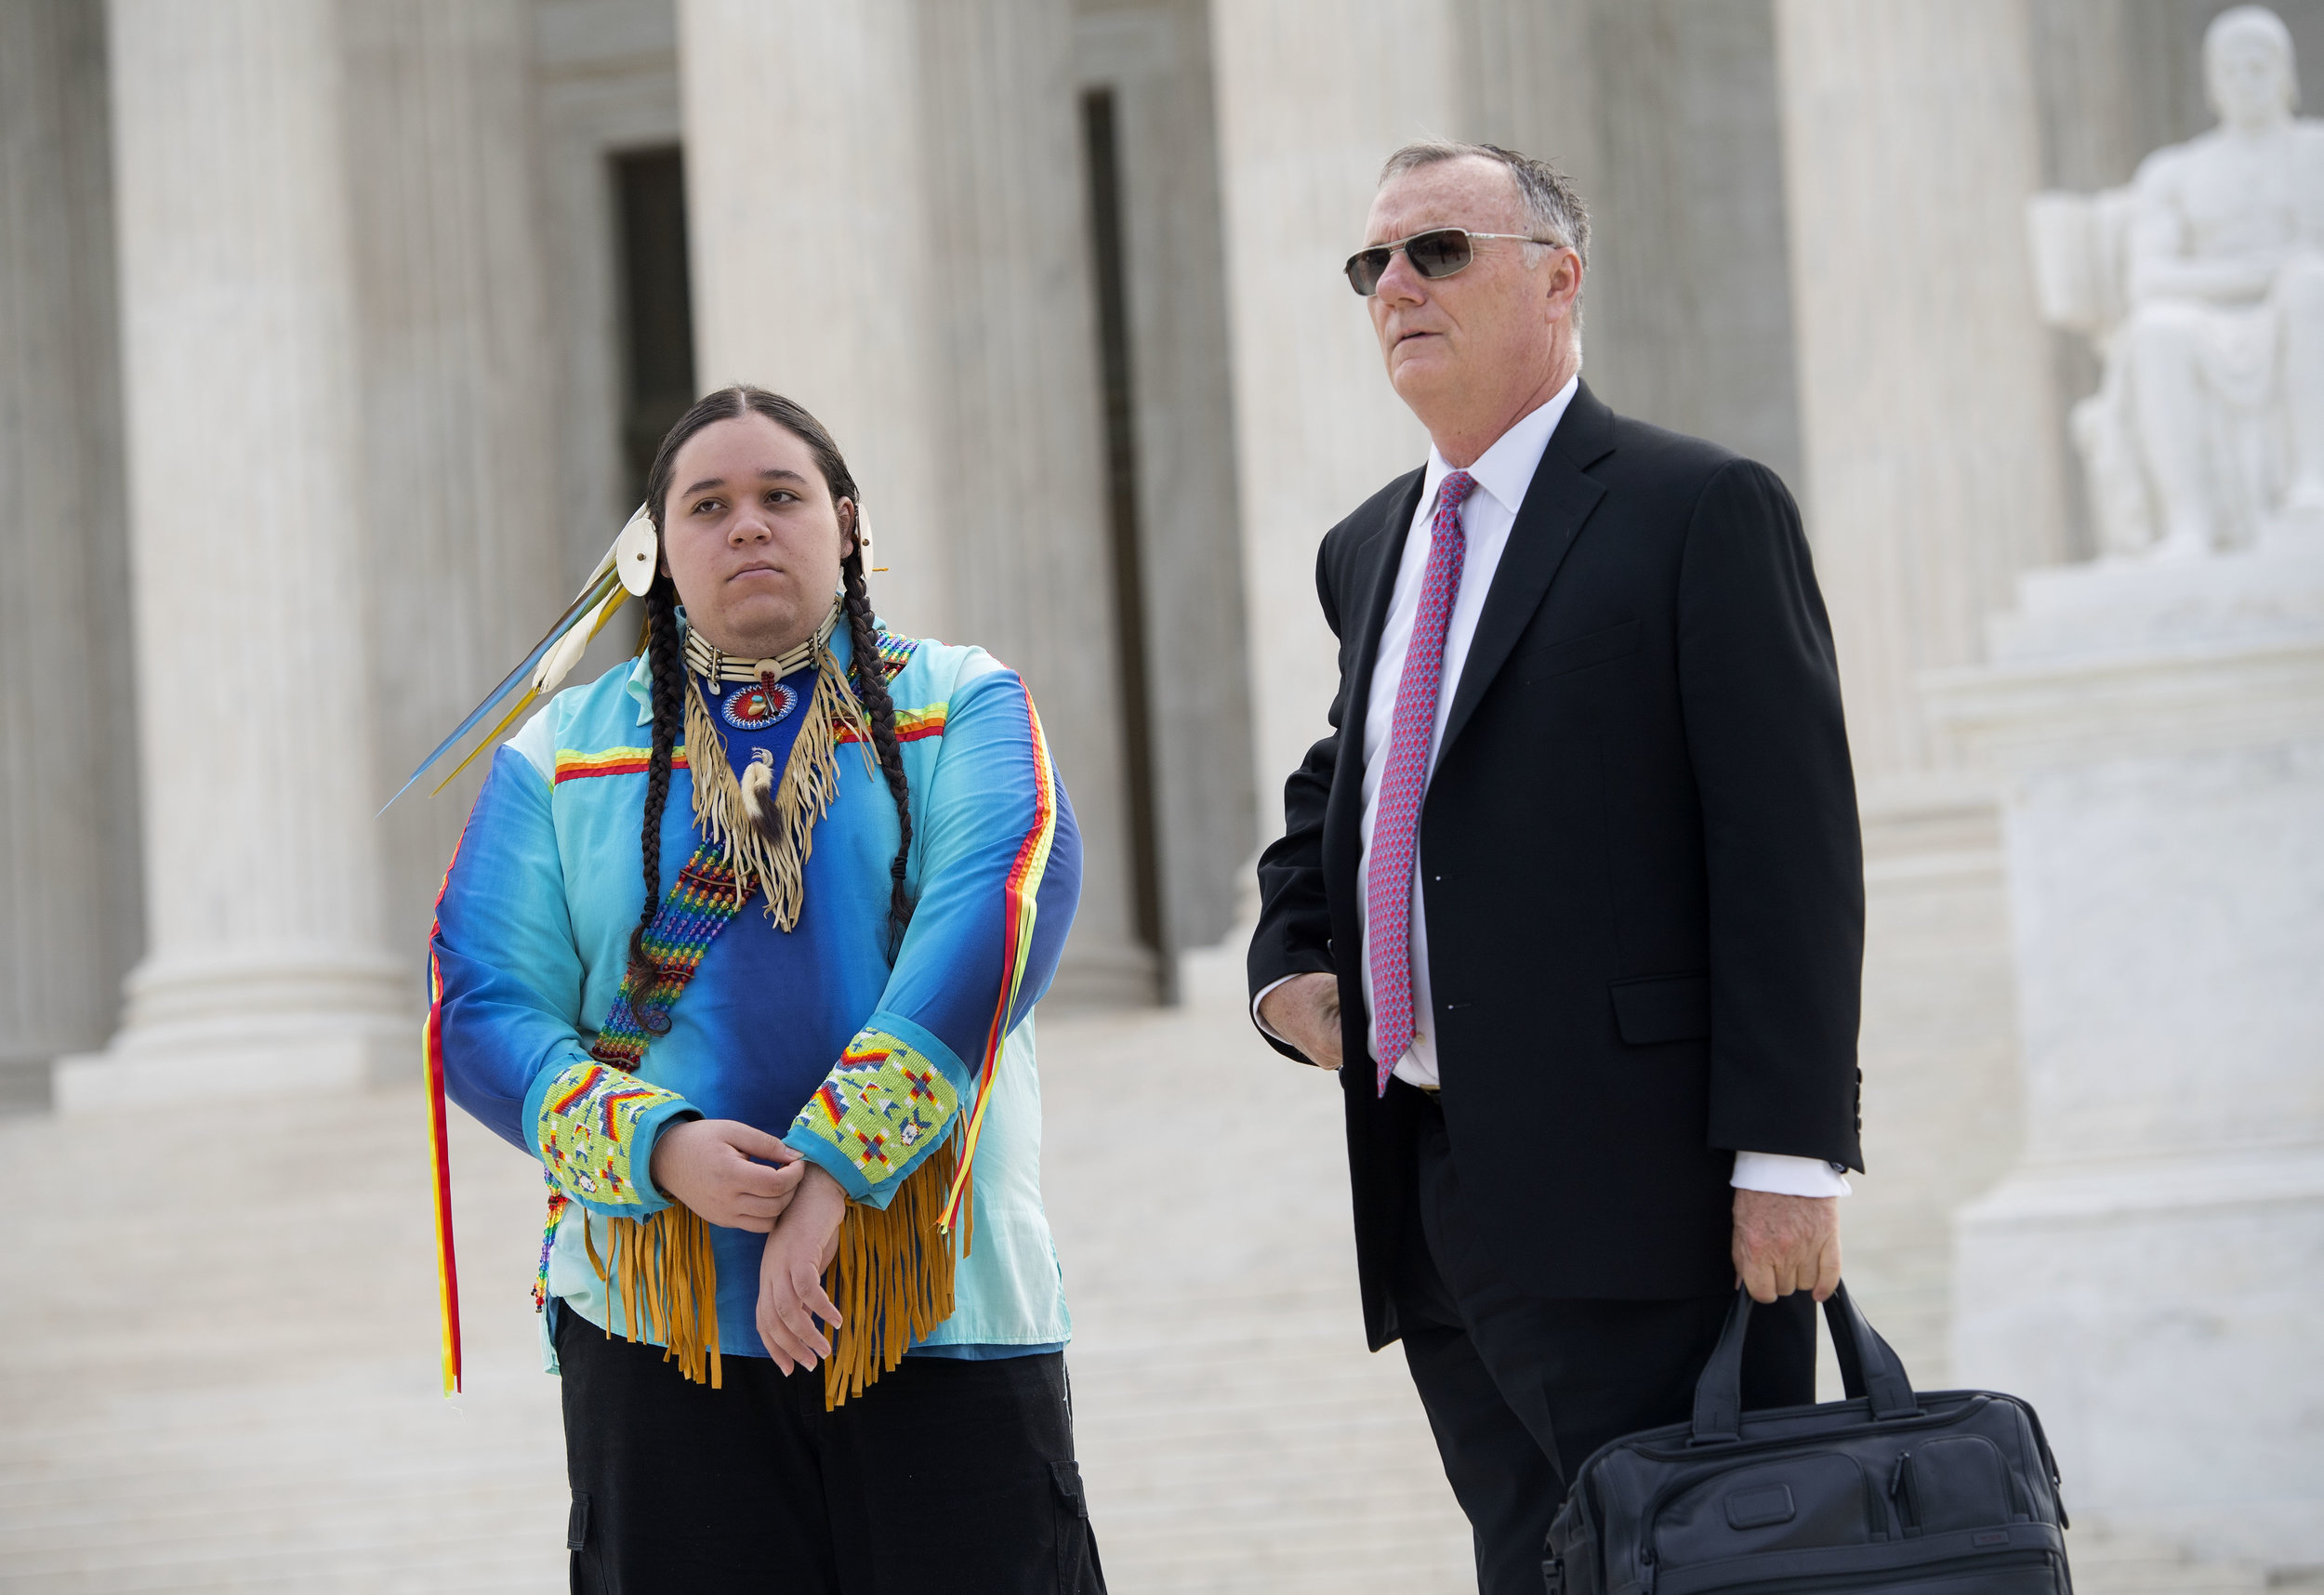 Journey with #youthvgov lawyer Phil Gregory on the steps of the U.S. Supreme Court, April 27, 2017. Photo: Robin Loznak